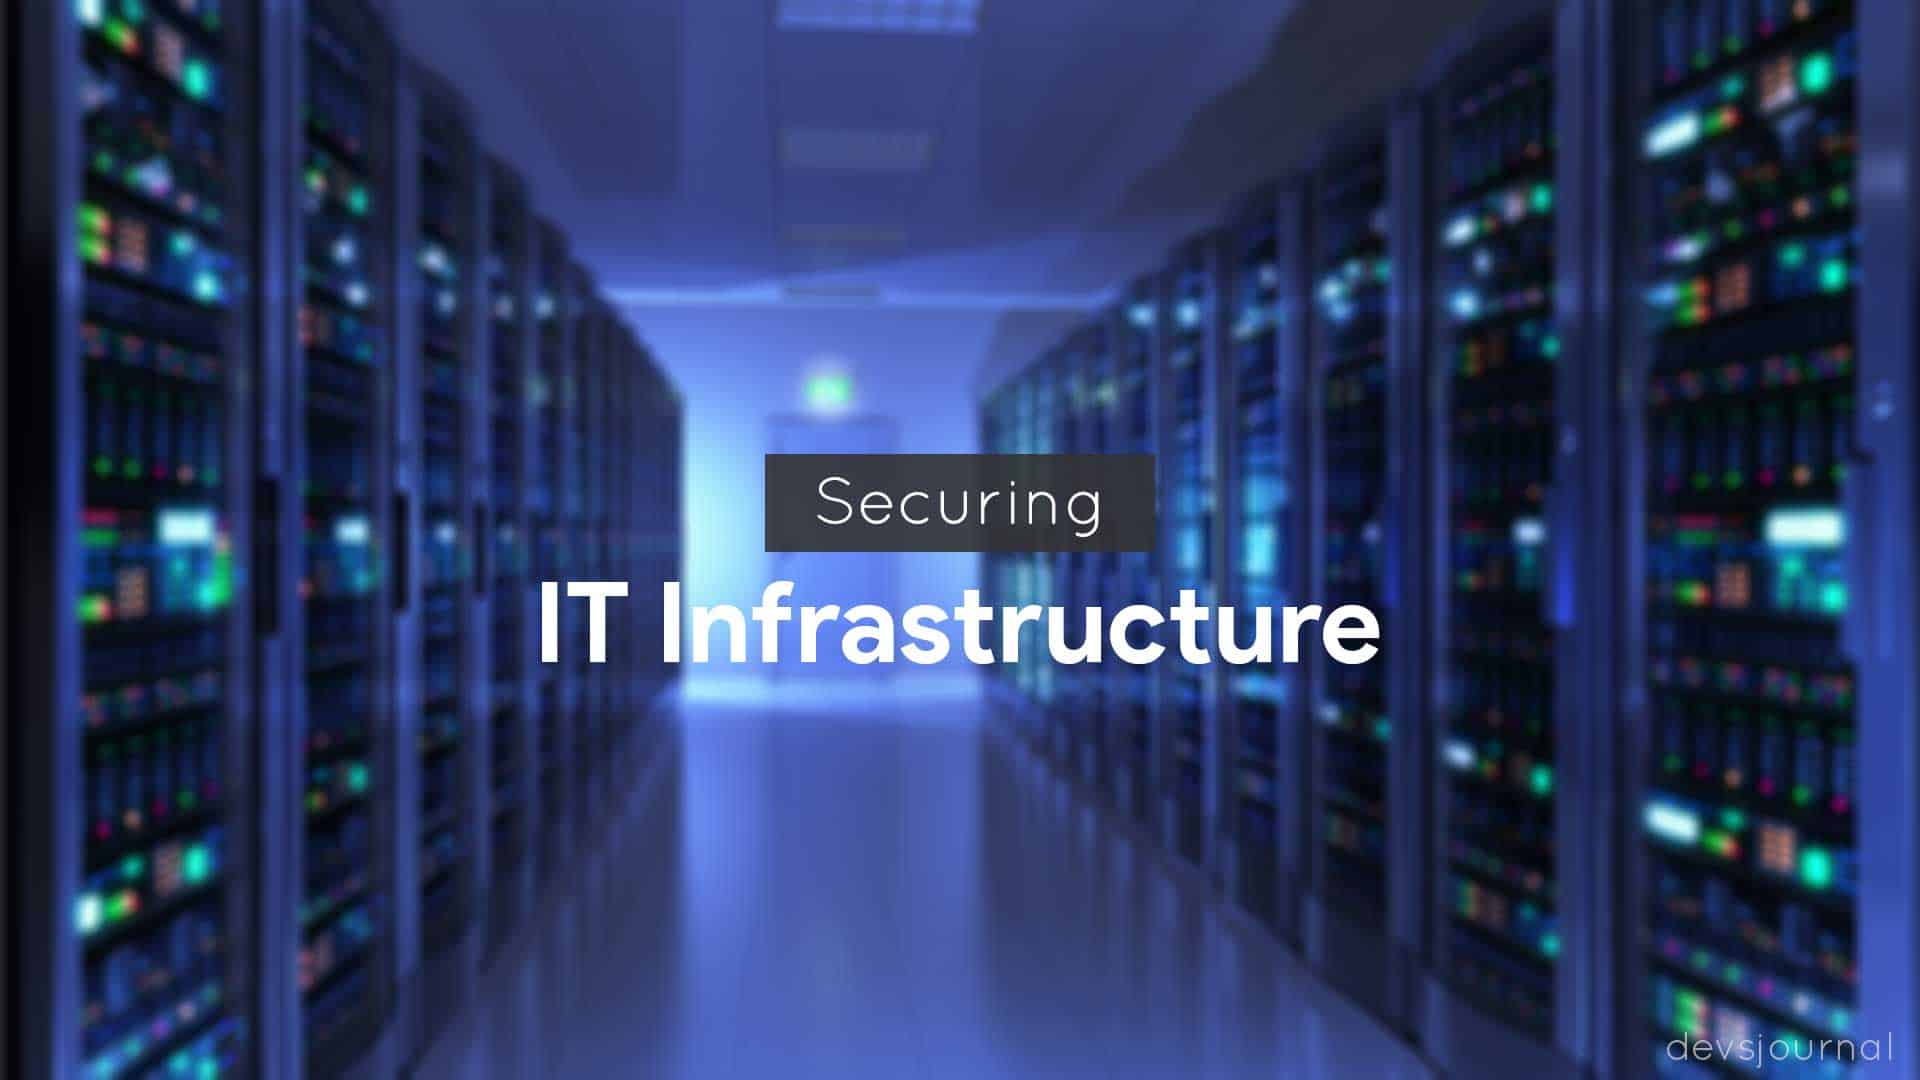 Securing IT Infrastructure in Small companies